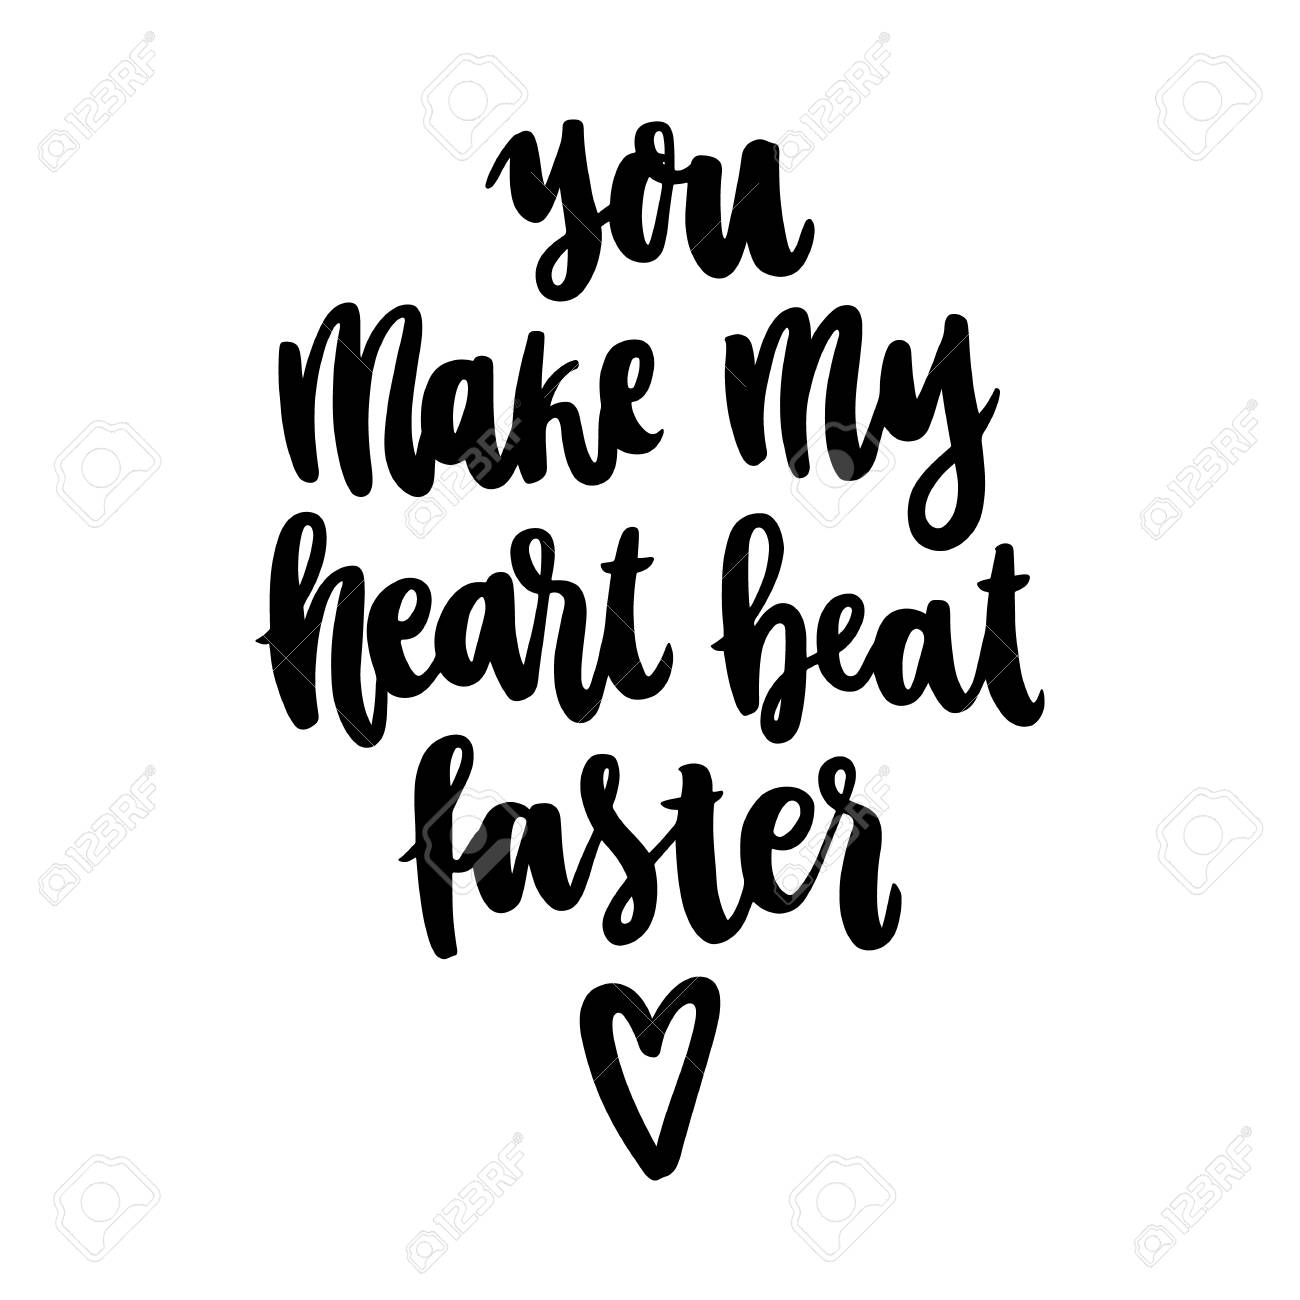 The hand-drawing quote: You make my heart beat faster, in a trendy